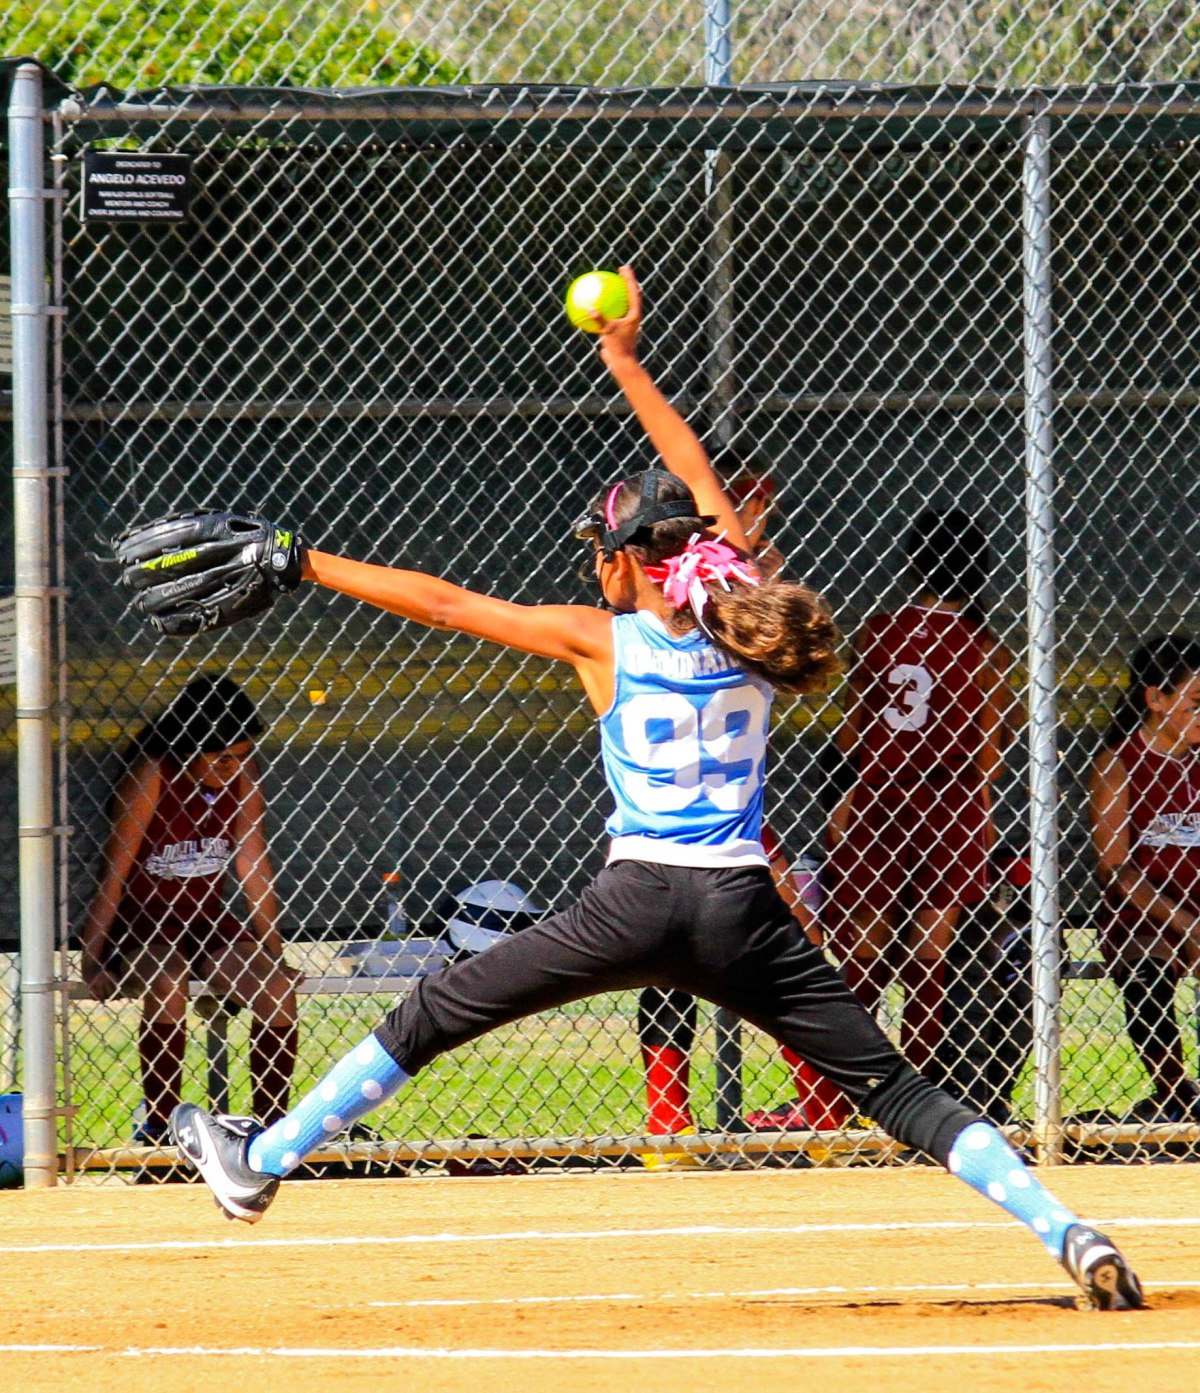 A girl's softball pitcher winds up for a fast ball